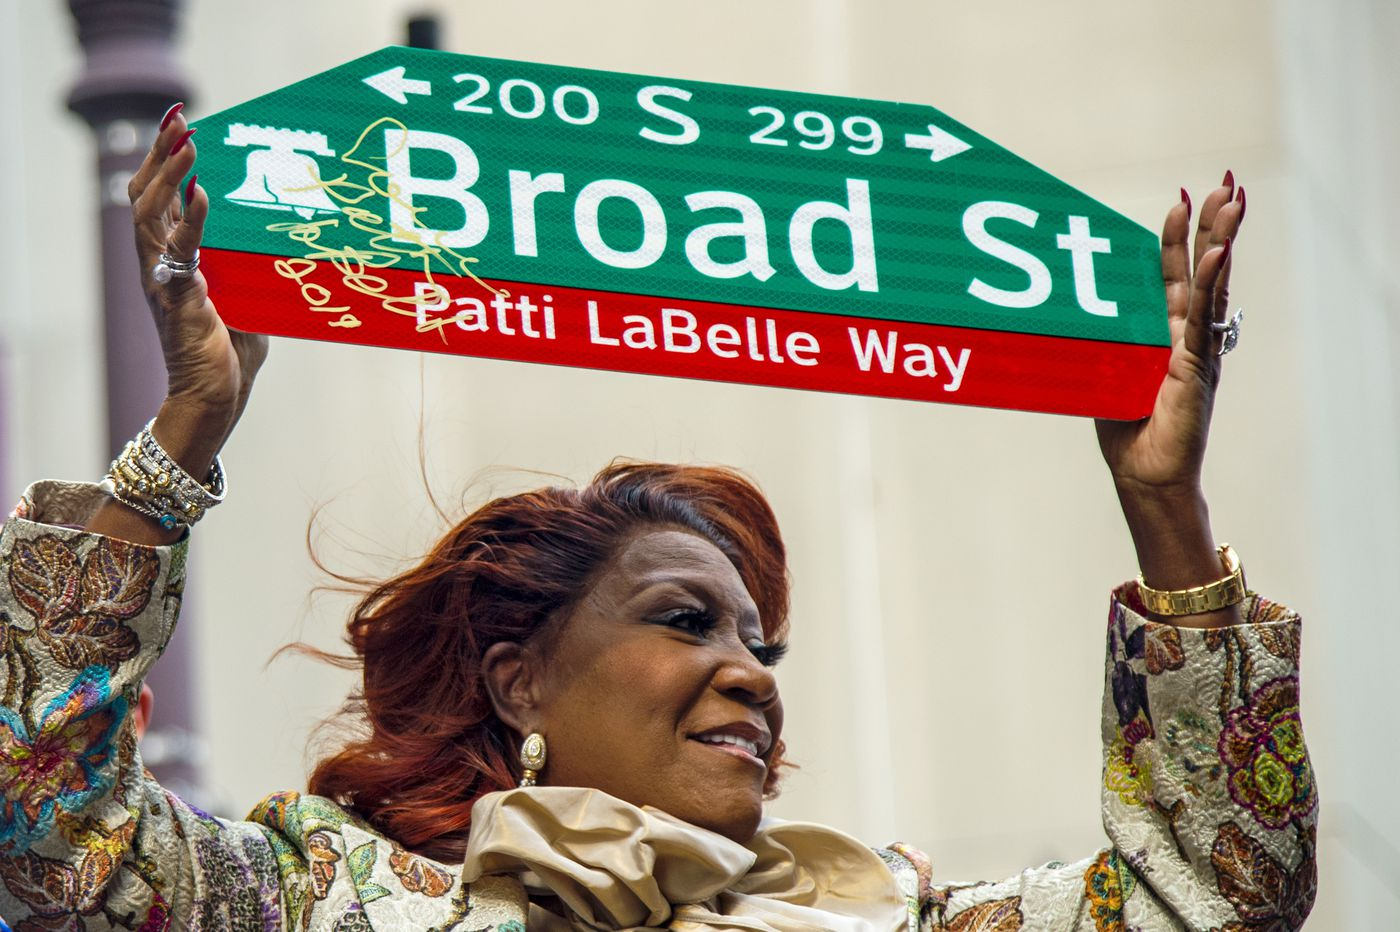 Patti LaBelle honored with her own Philly street